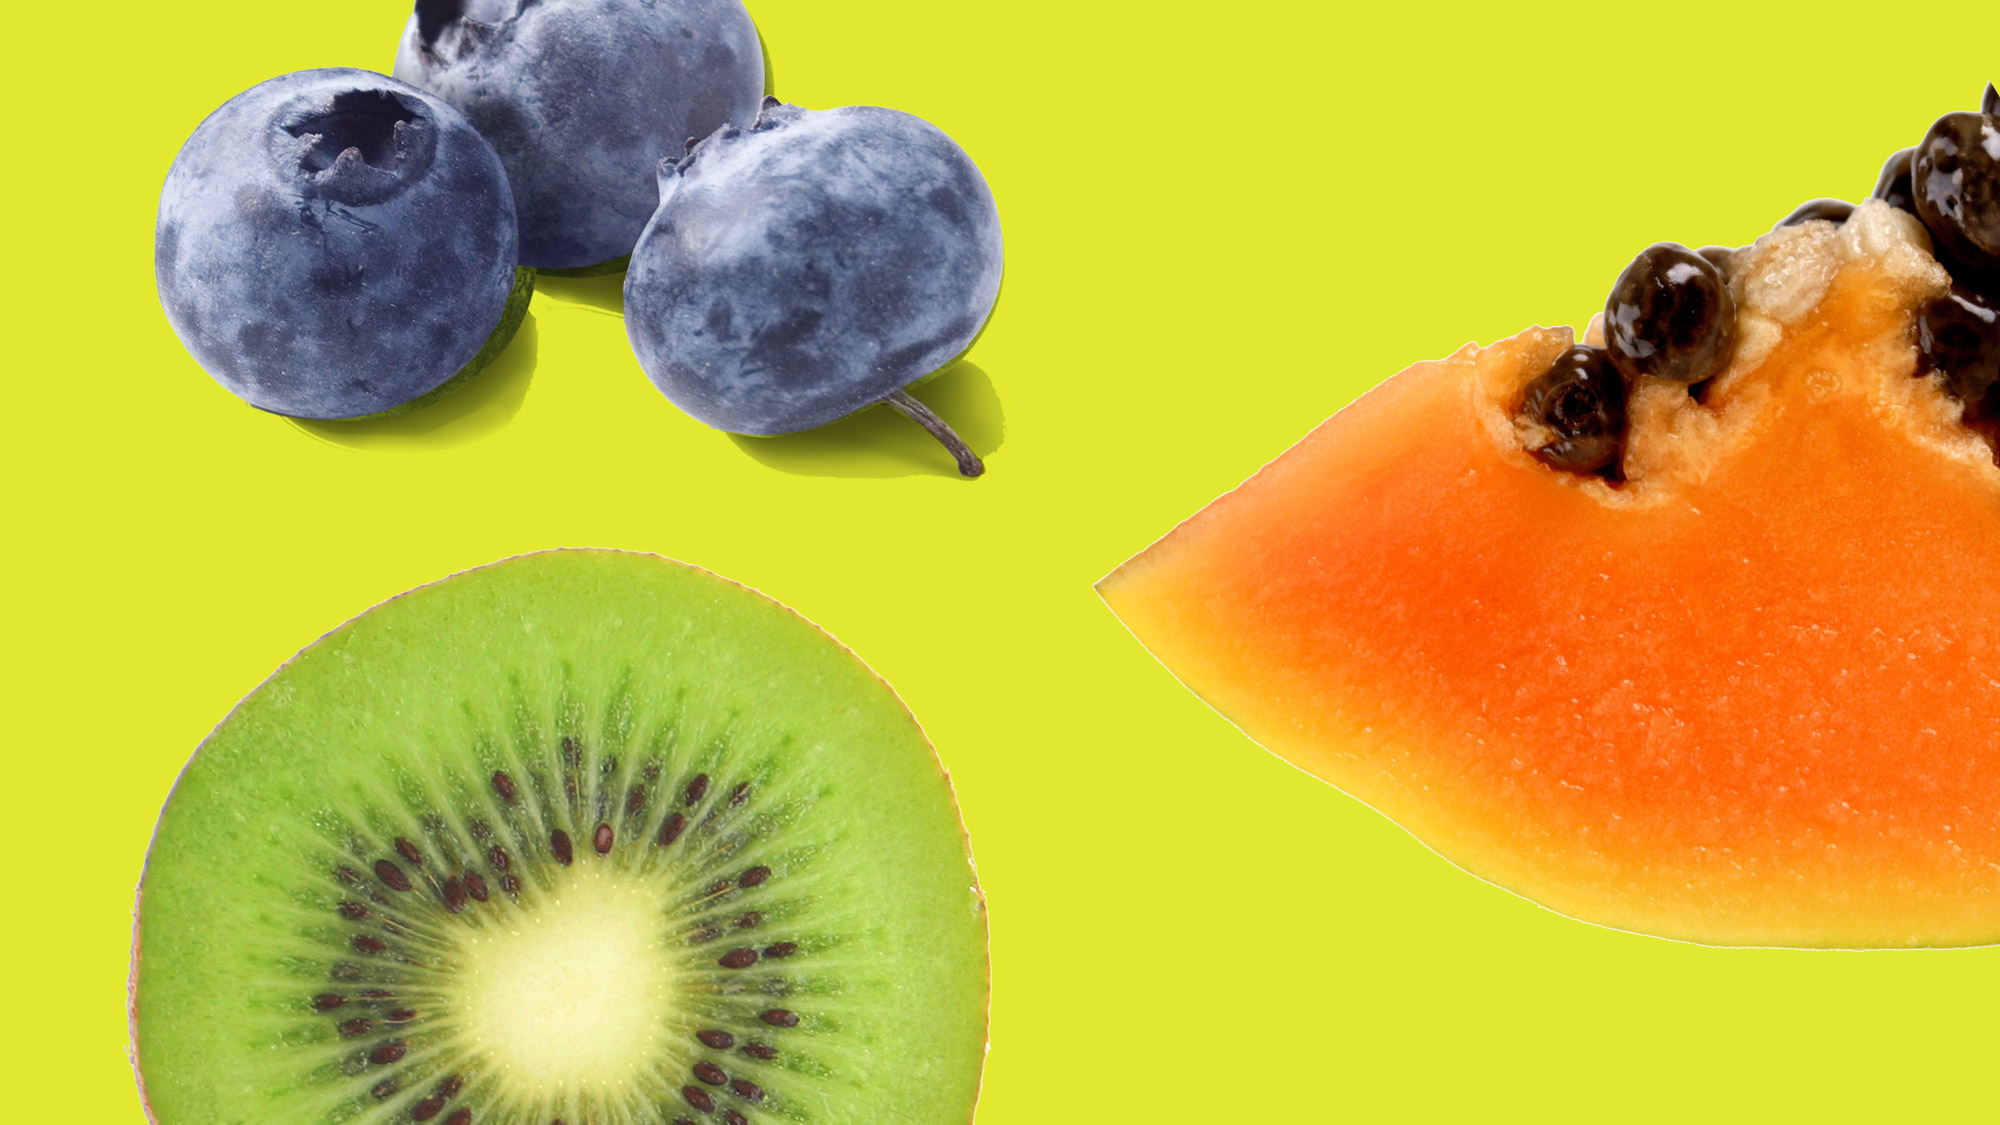 NutriBullet recipes: Superfood smoothies to give you an instant boost